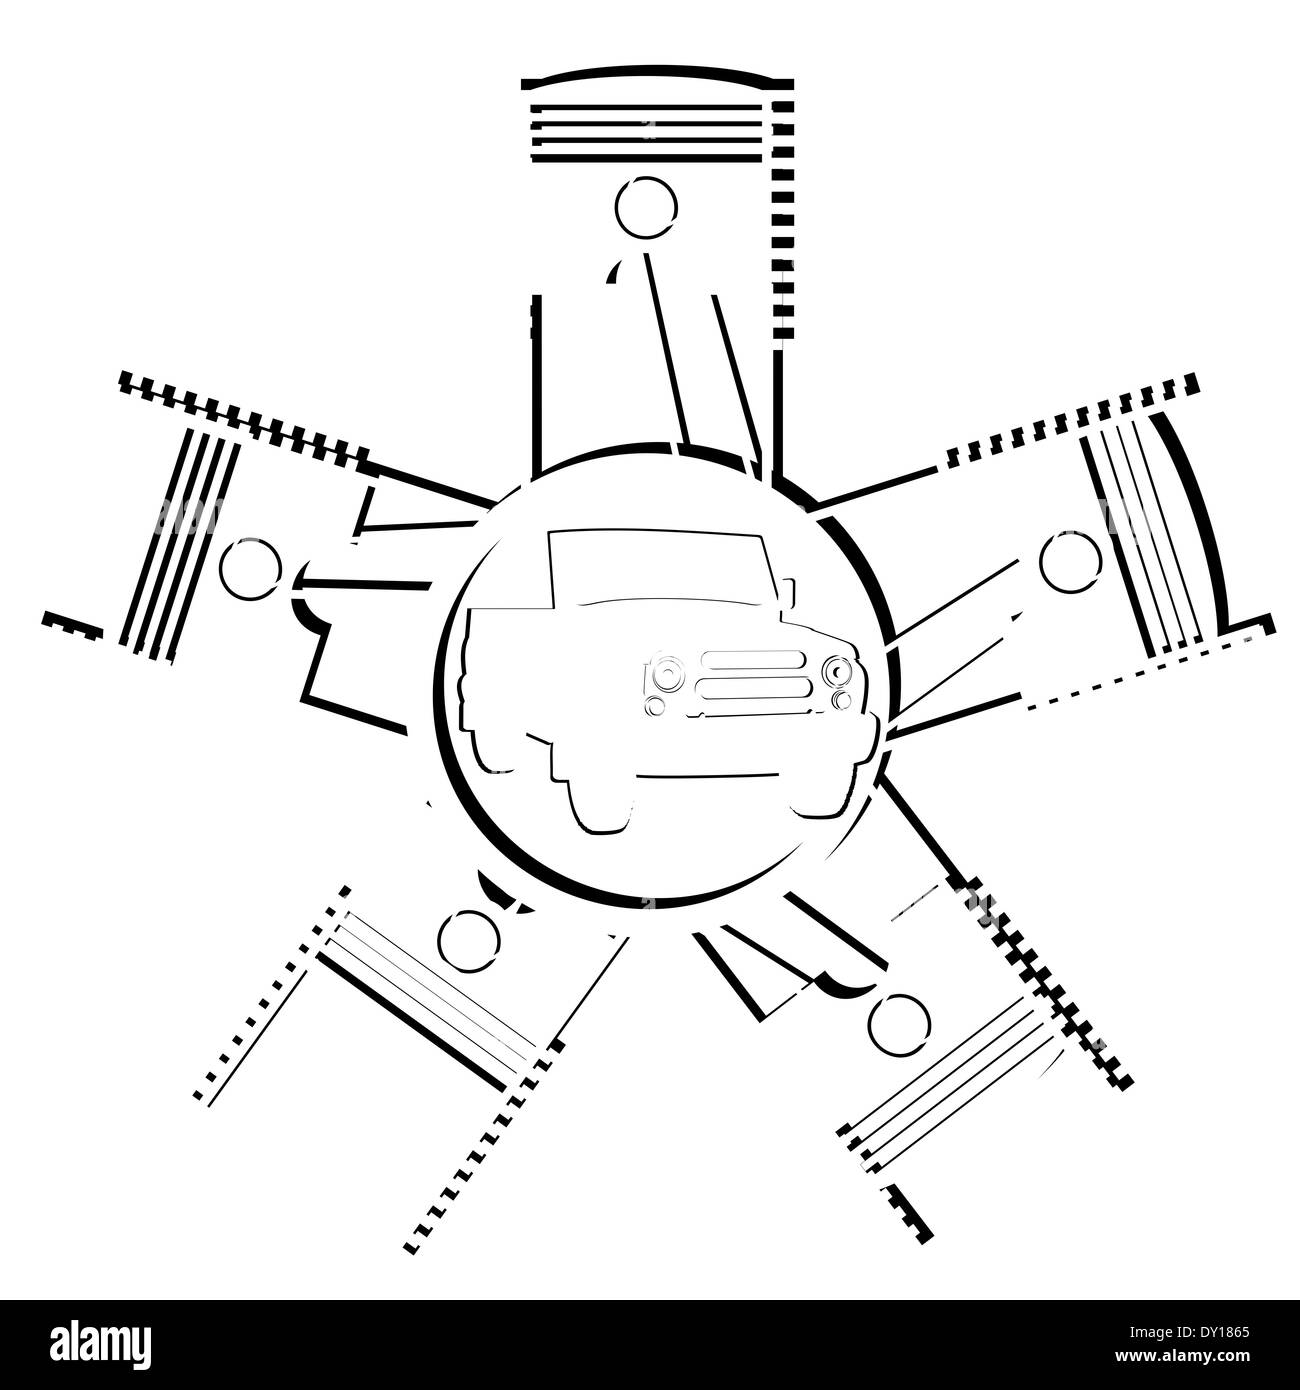 Piston And Cylinder Stock Photos Images Engine Diagram Illustration Abstract System On White Background Image